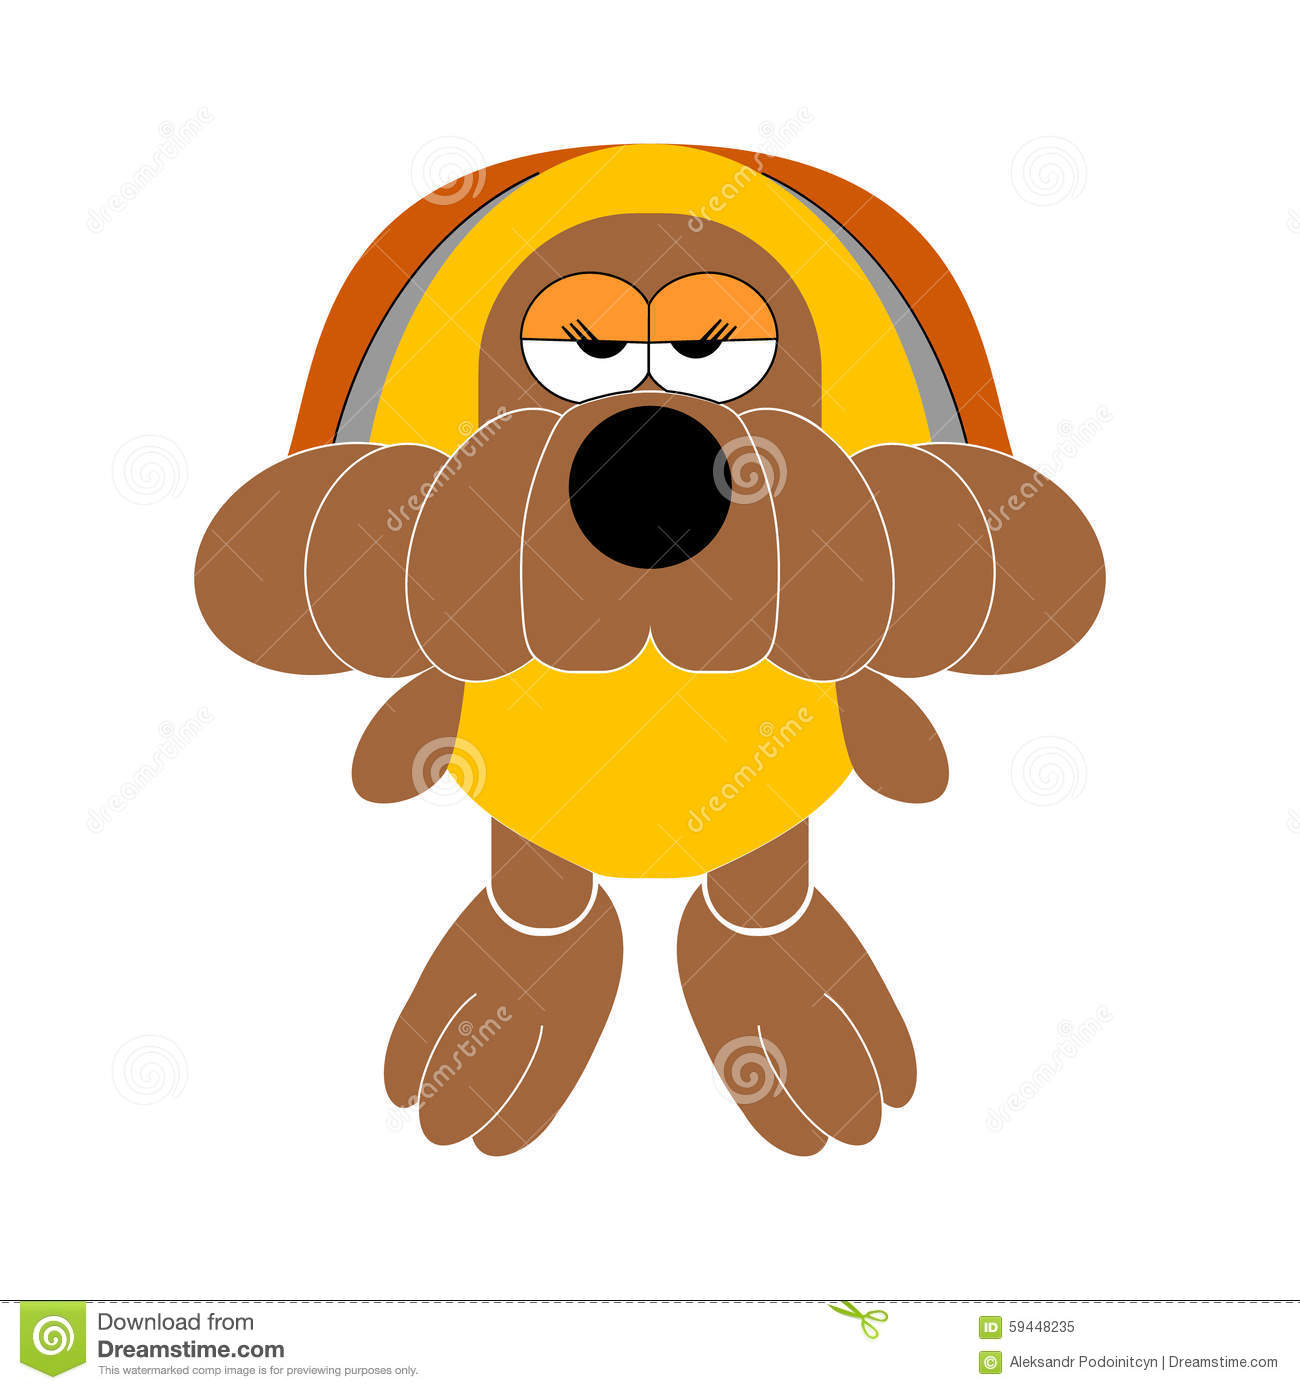 Soft Toys Clip Art : Dog soft toy doggy stock vector image